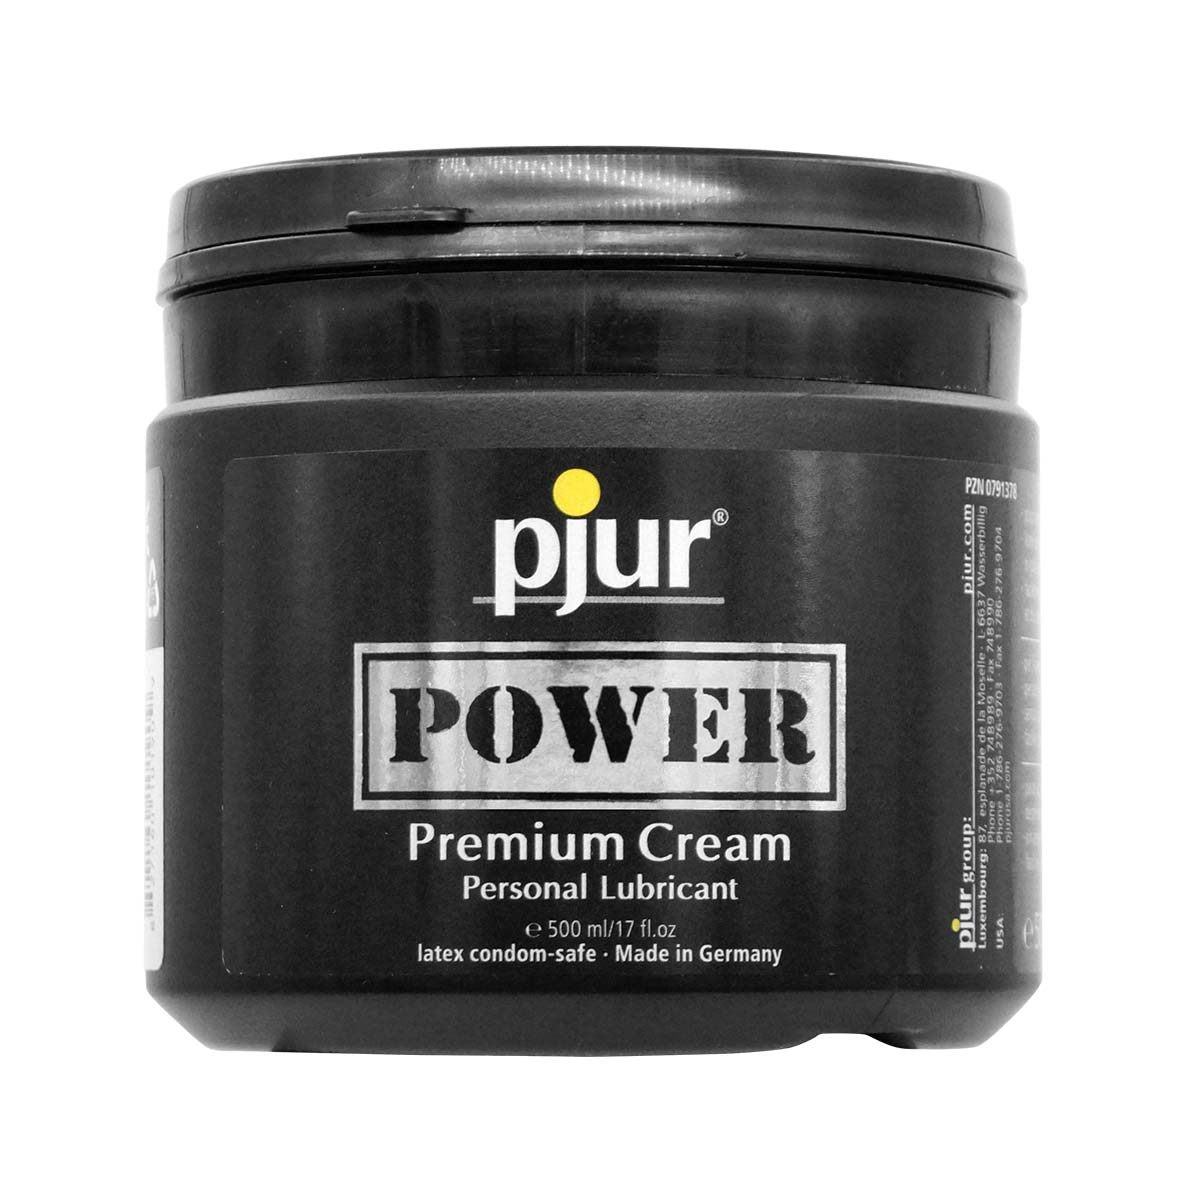 pjur POWER 500ml Premium Cream